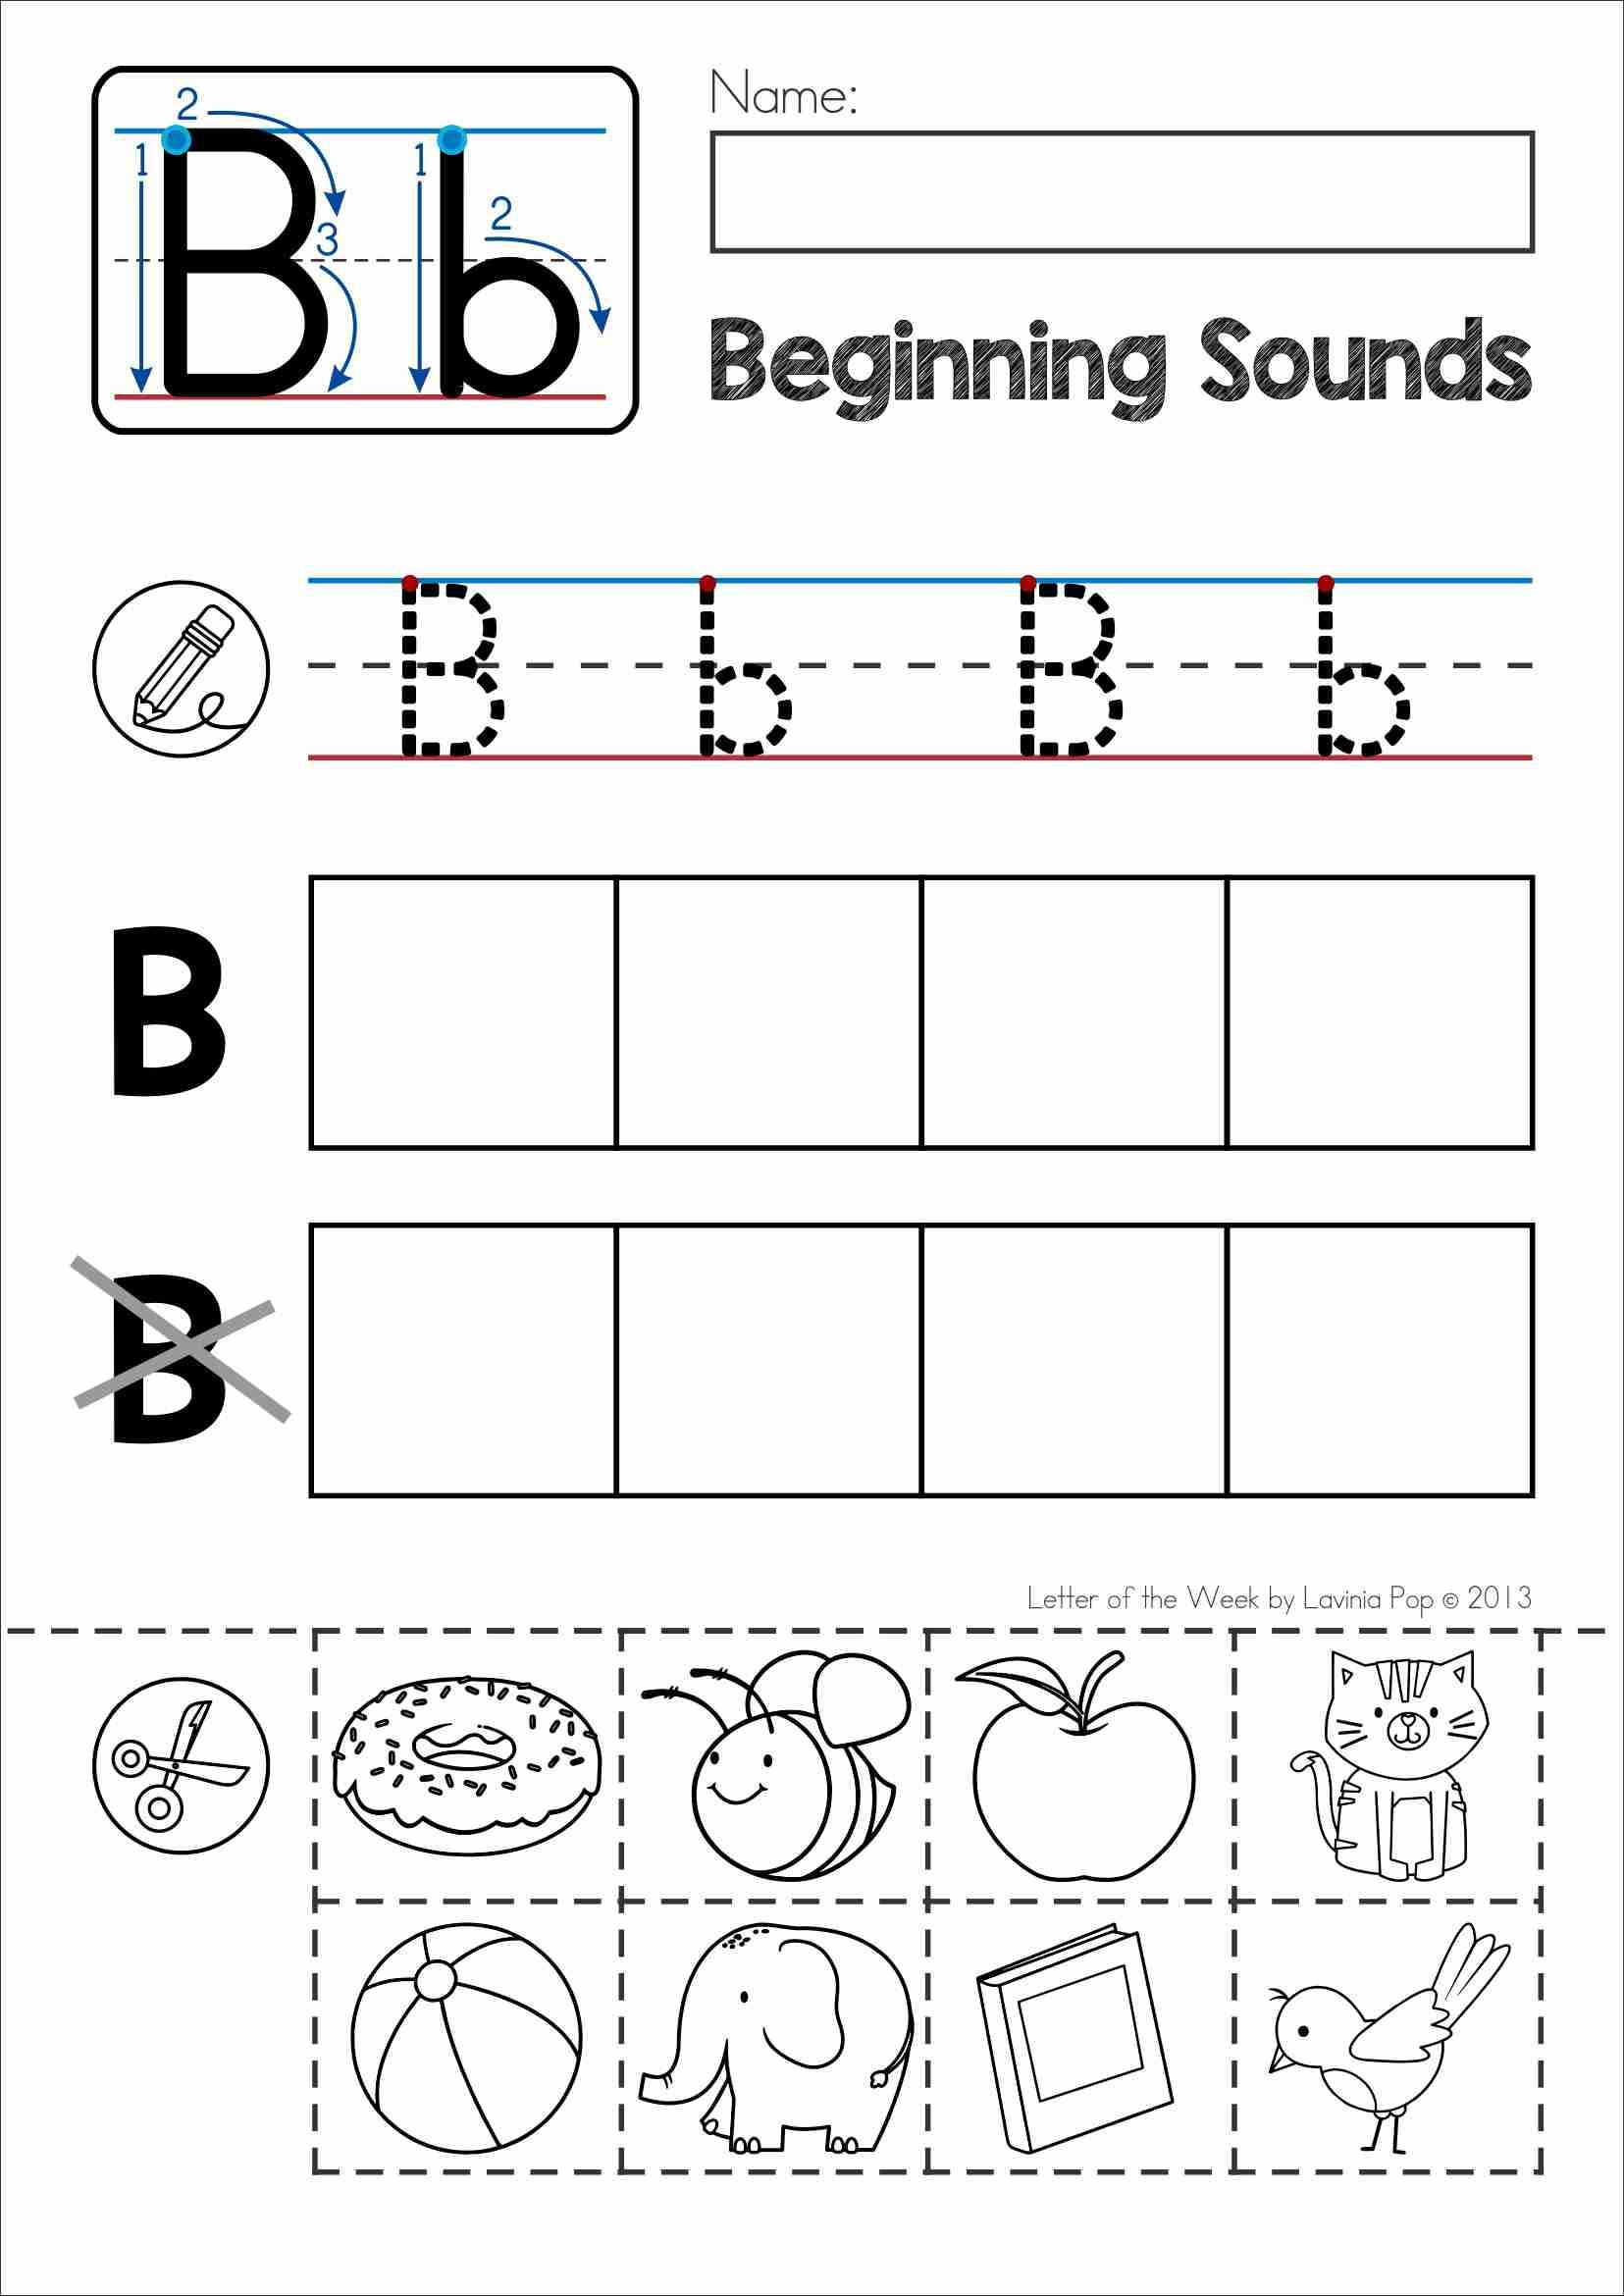 free phonics letter of the week b beginning sounds cut and paste letter of the week. Black Bedroom Furniture Sets. Home Design Ideas